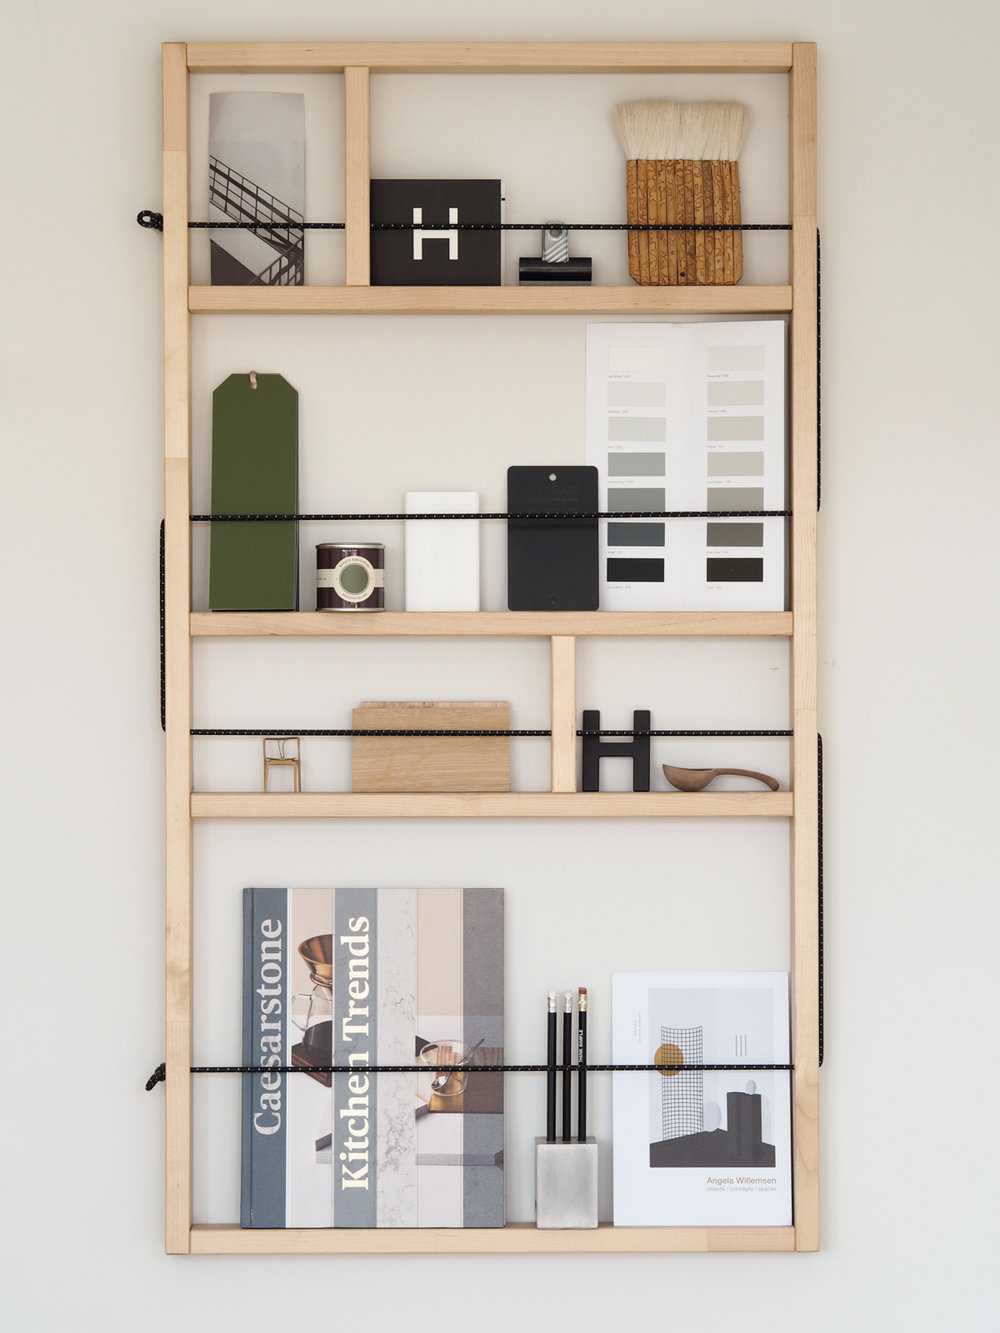 Moodboard inspiration for our new kitchen